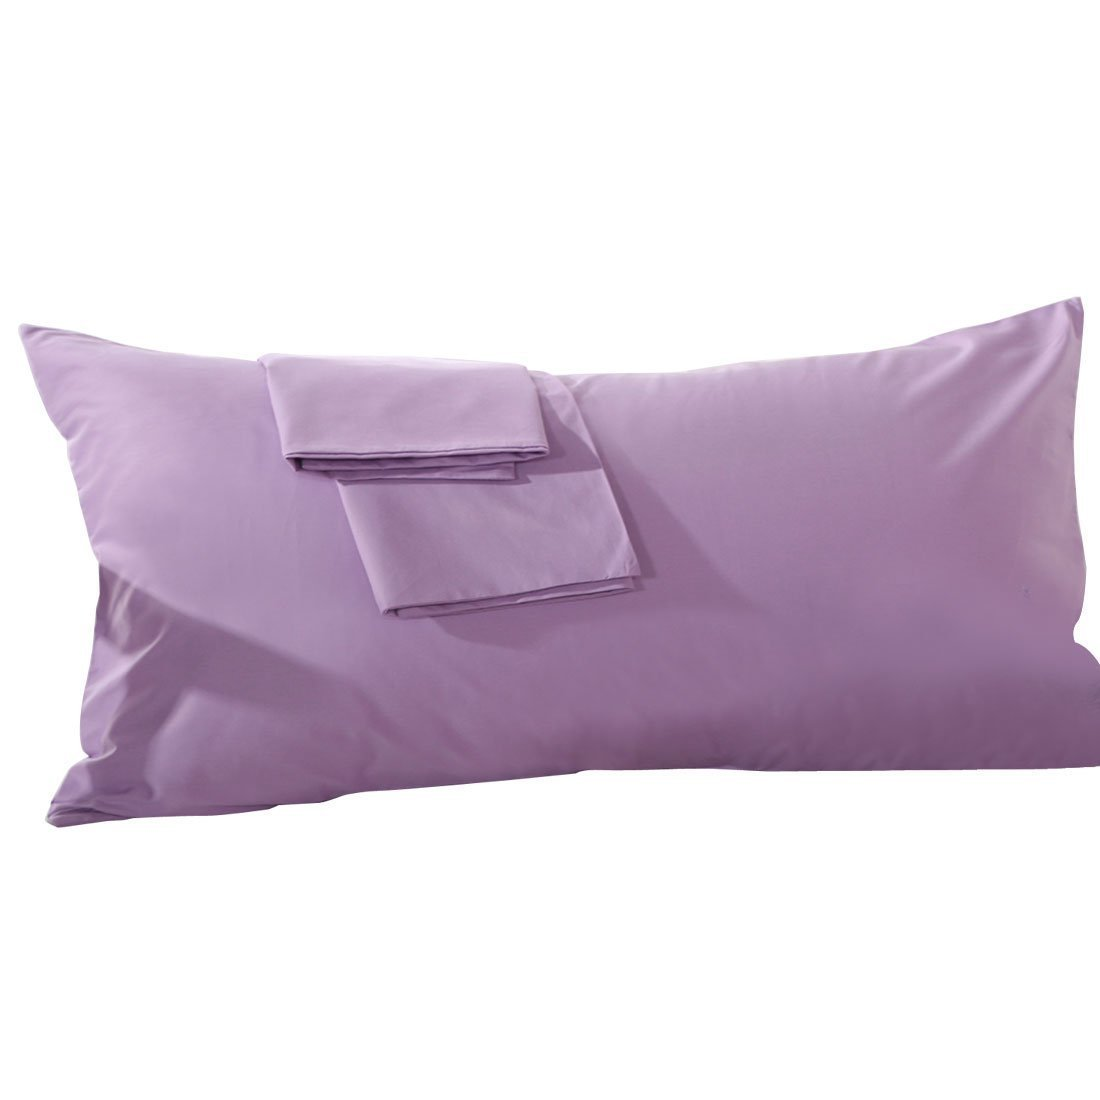 800 Thread Count 2 Piece Bodypillow Cases Solid 100% Egyptian Cotton (20-by-54 Inch, Lilac).